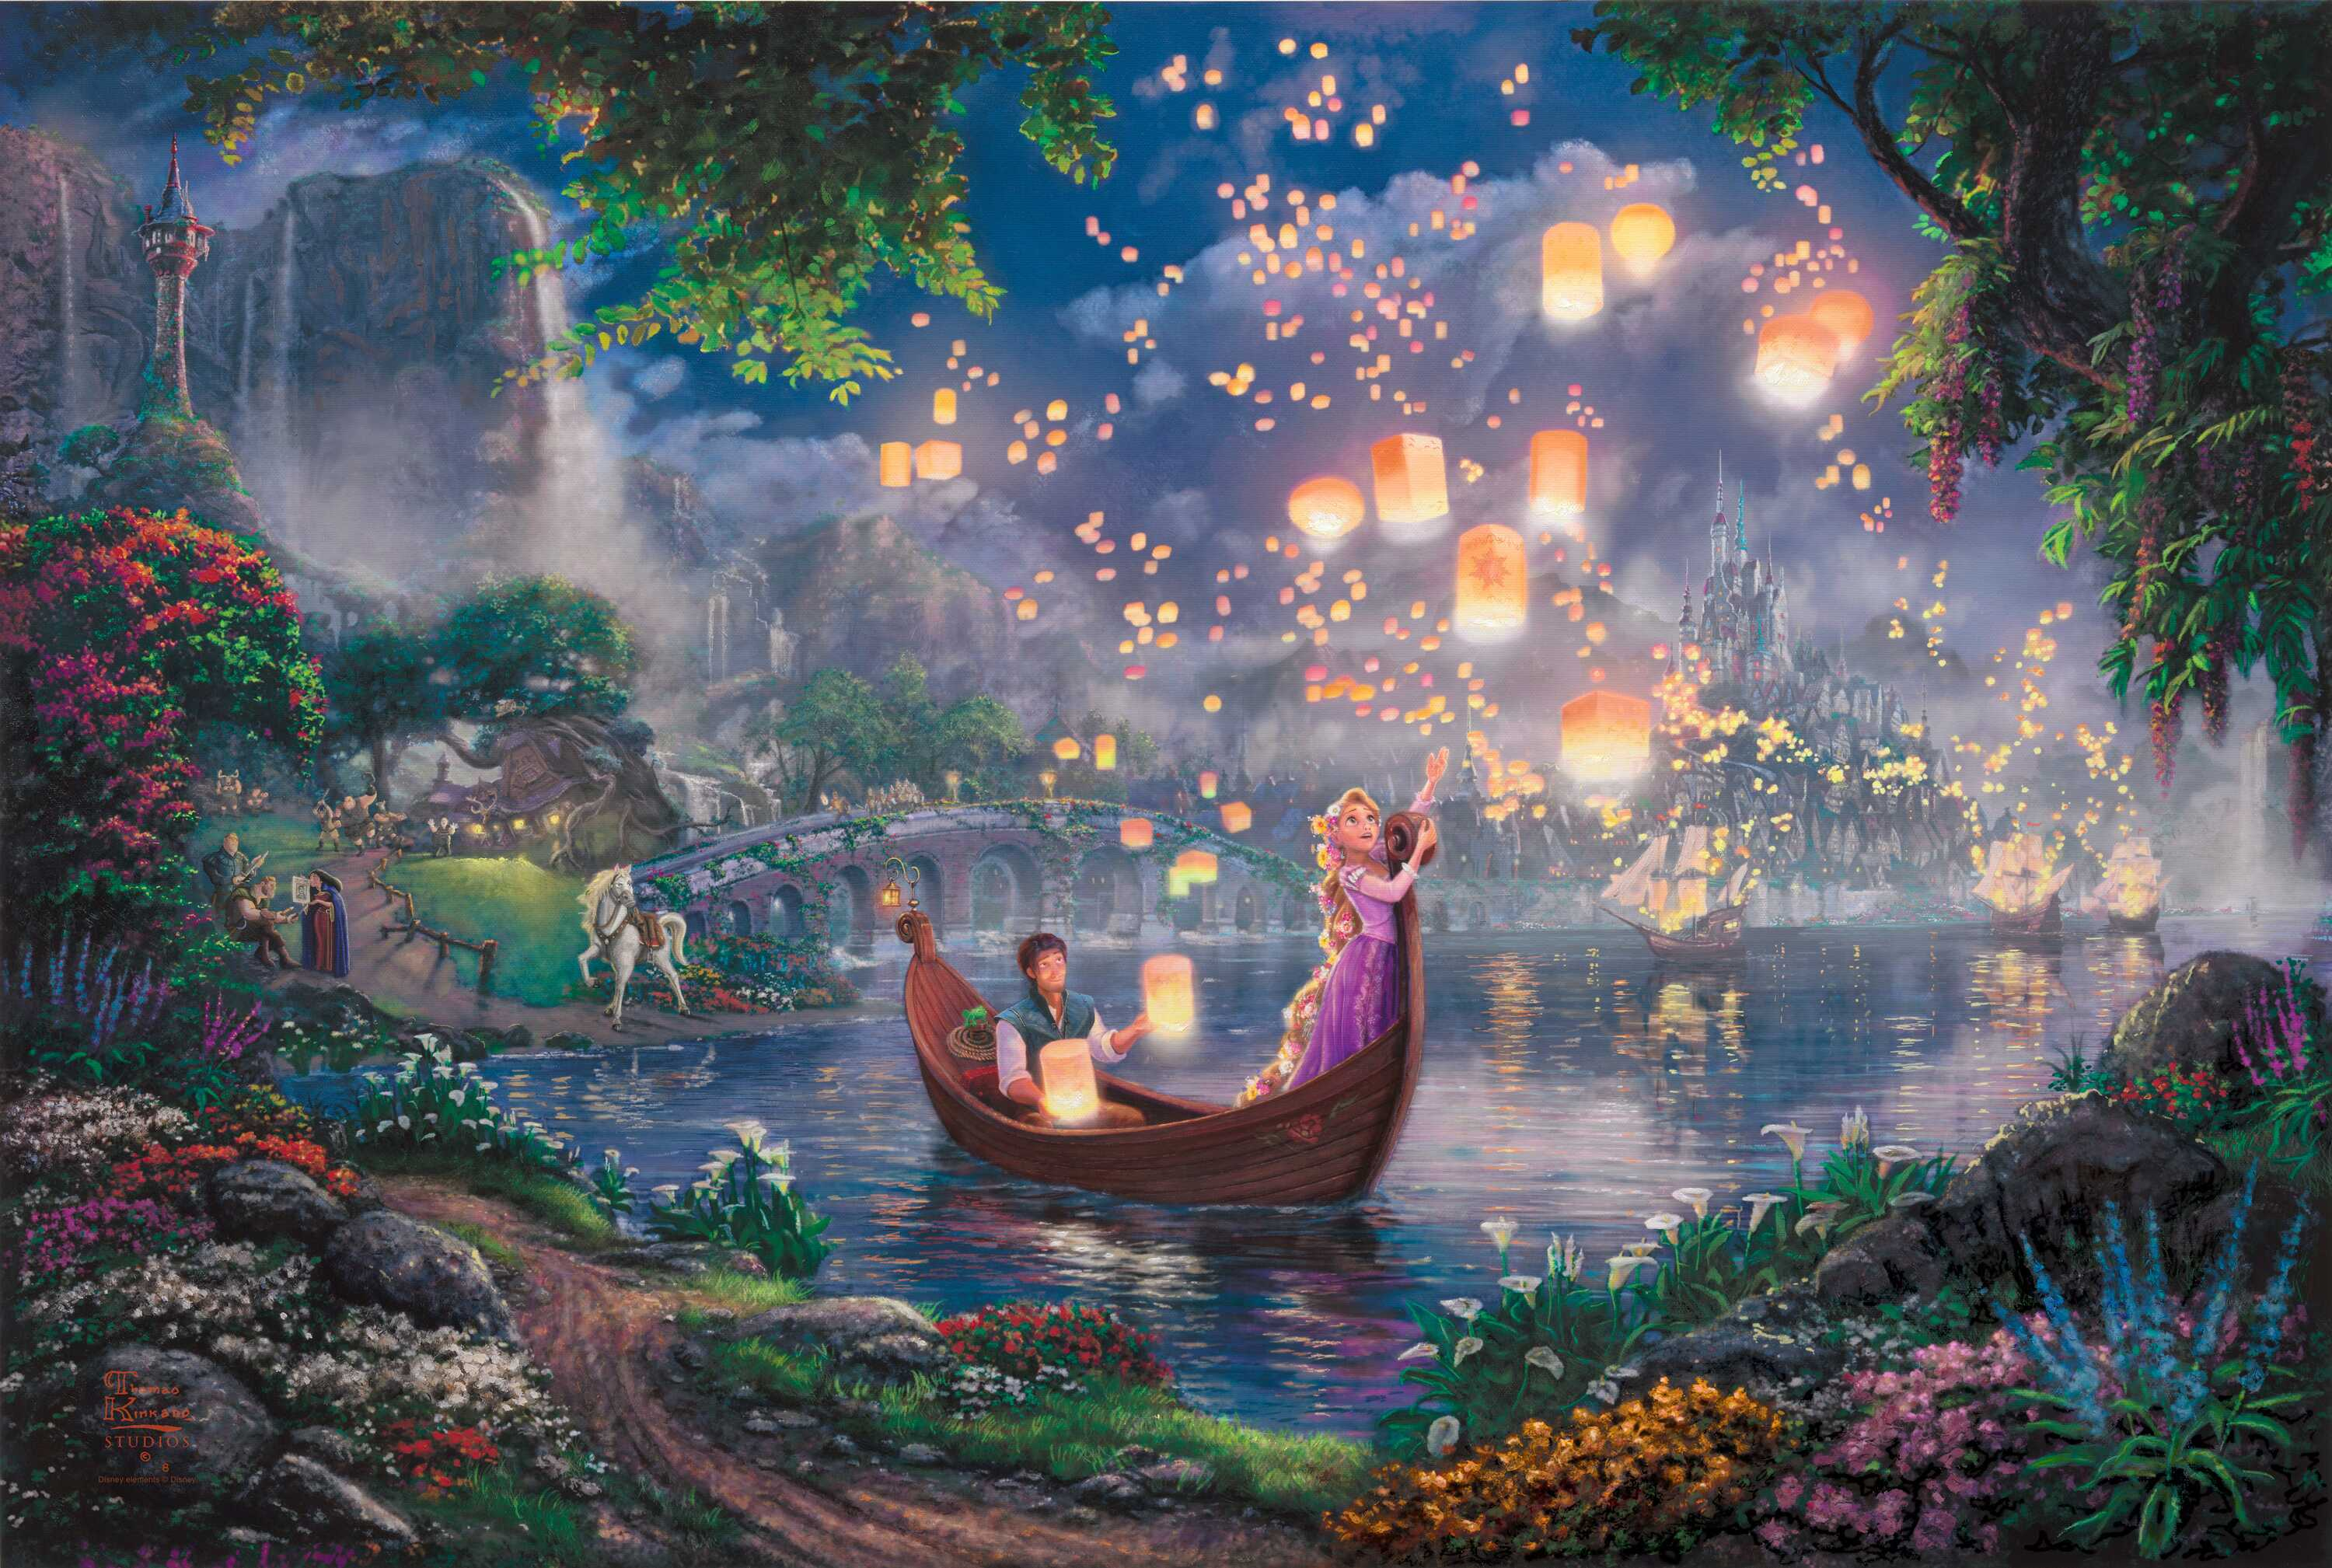 Tangled Wallpaper Thomas Kinkade painting Kinkade Walt Disney 50 3000x2017